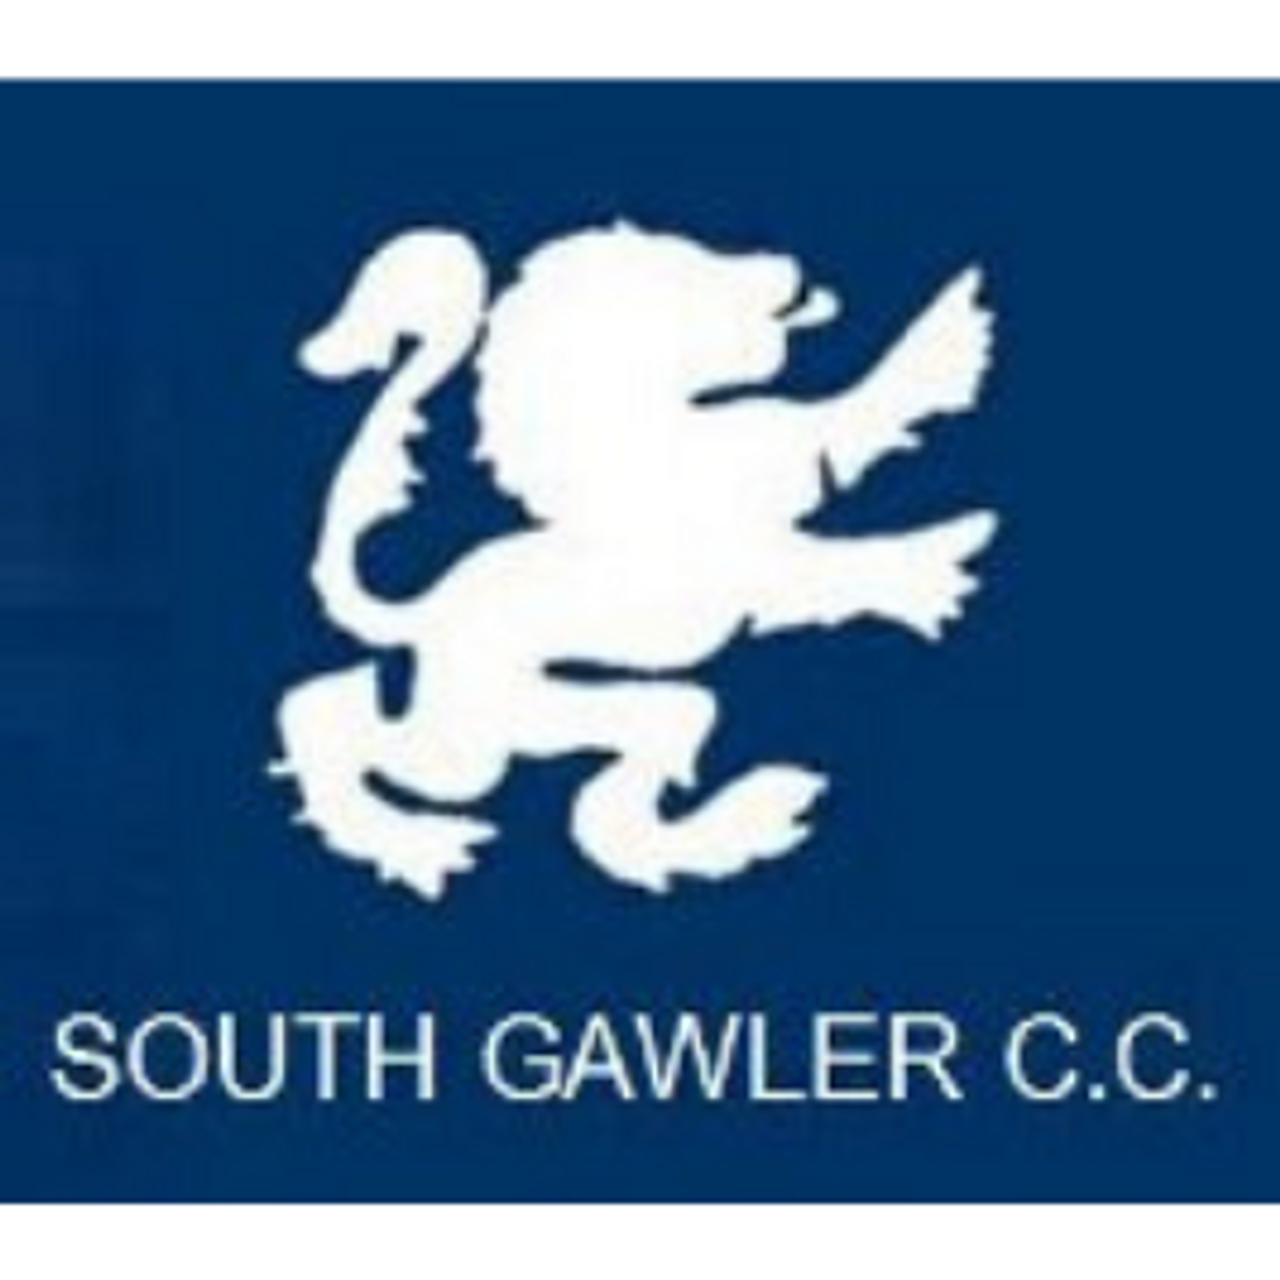 South Gawler CC